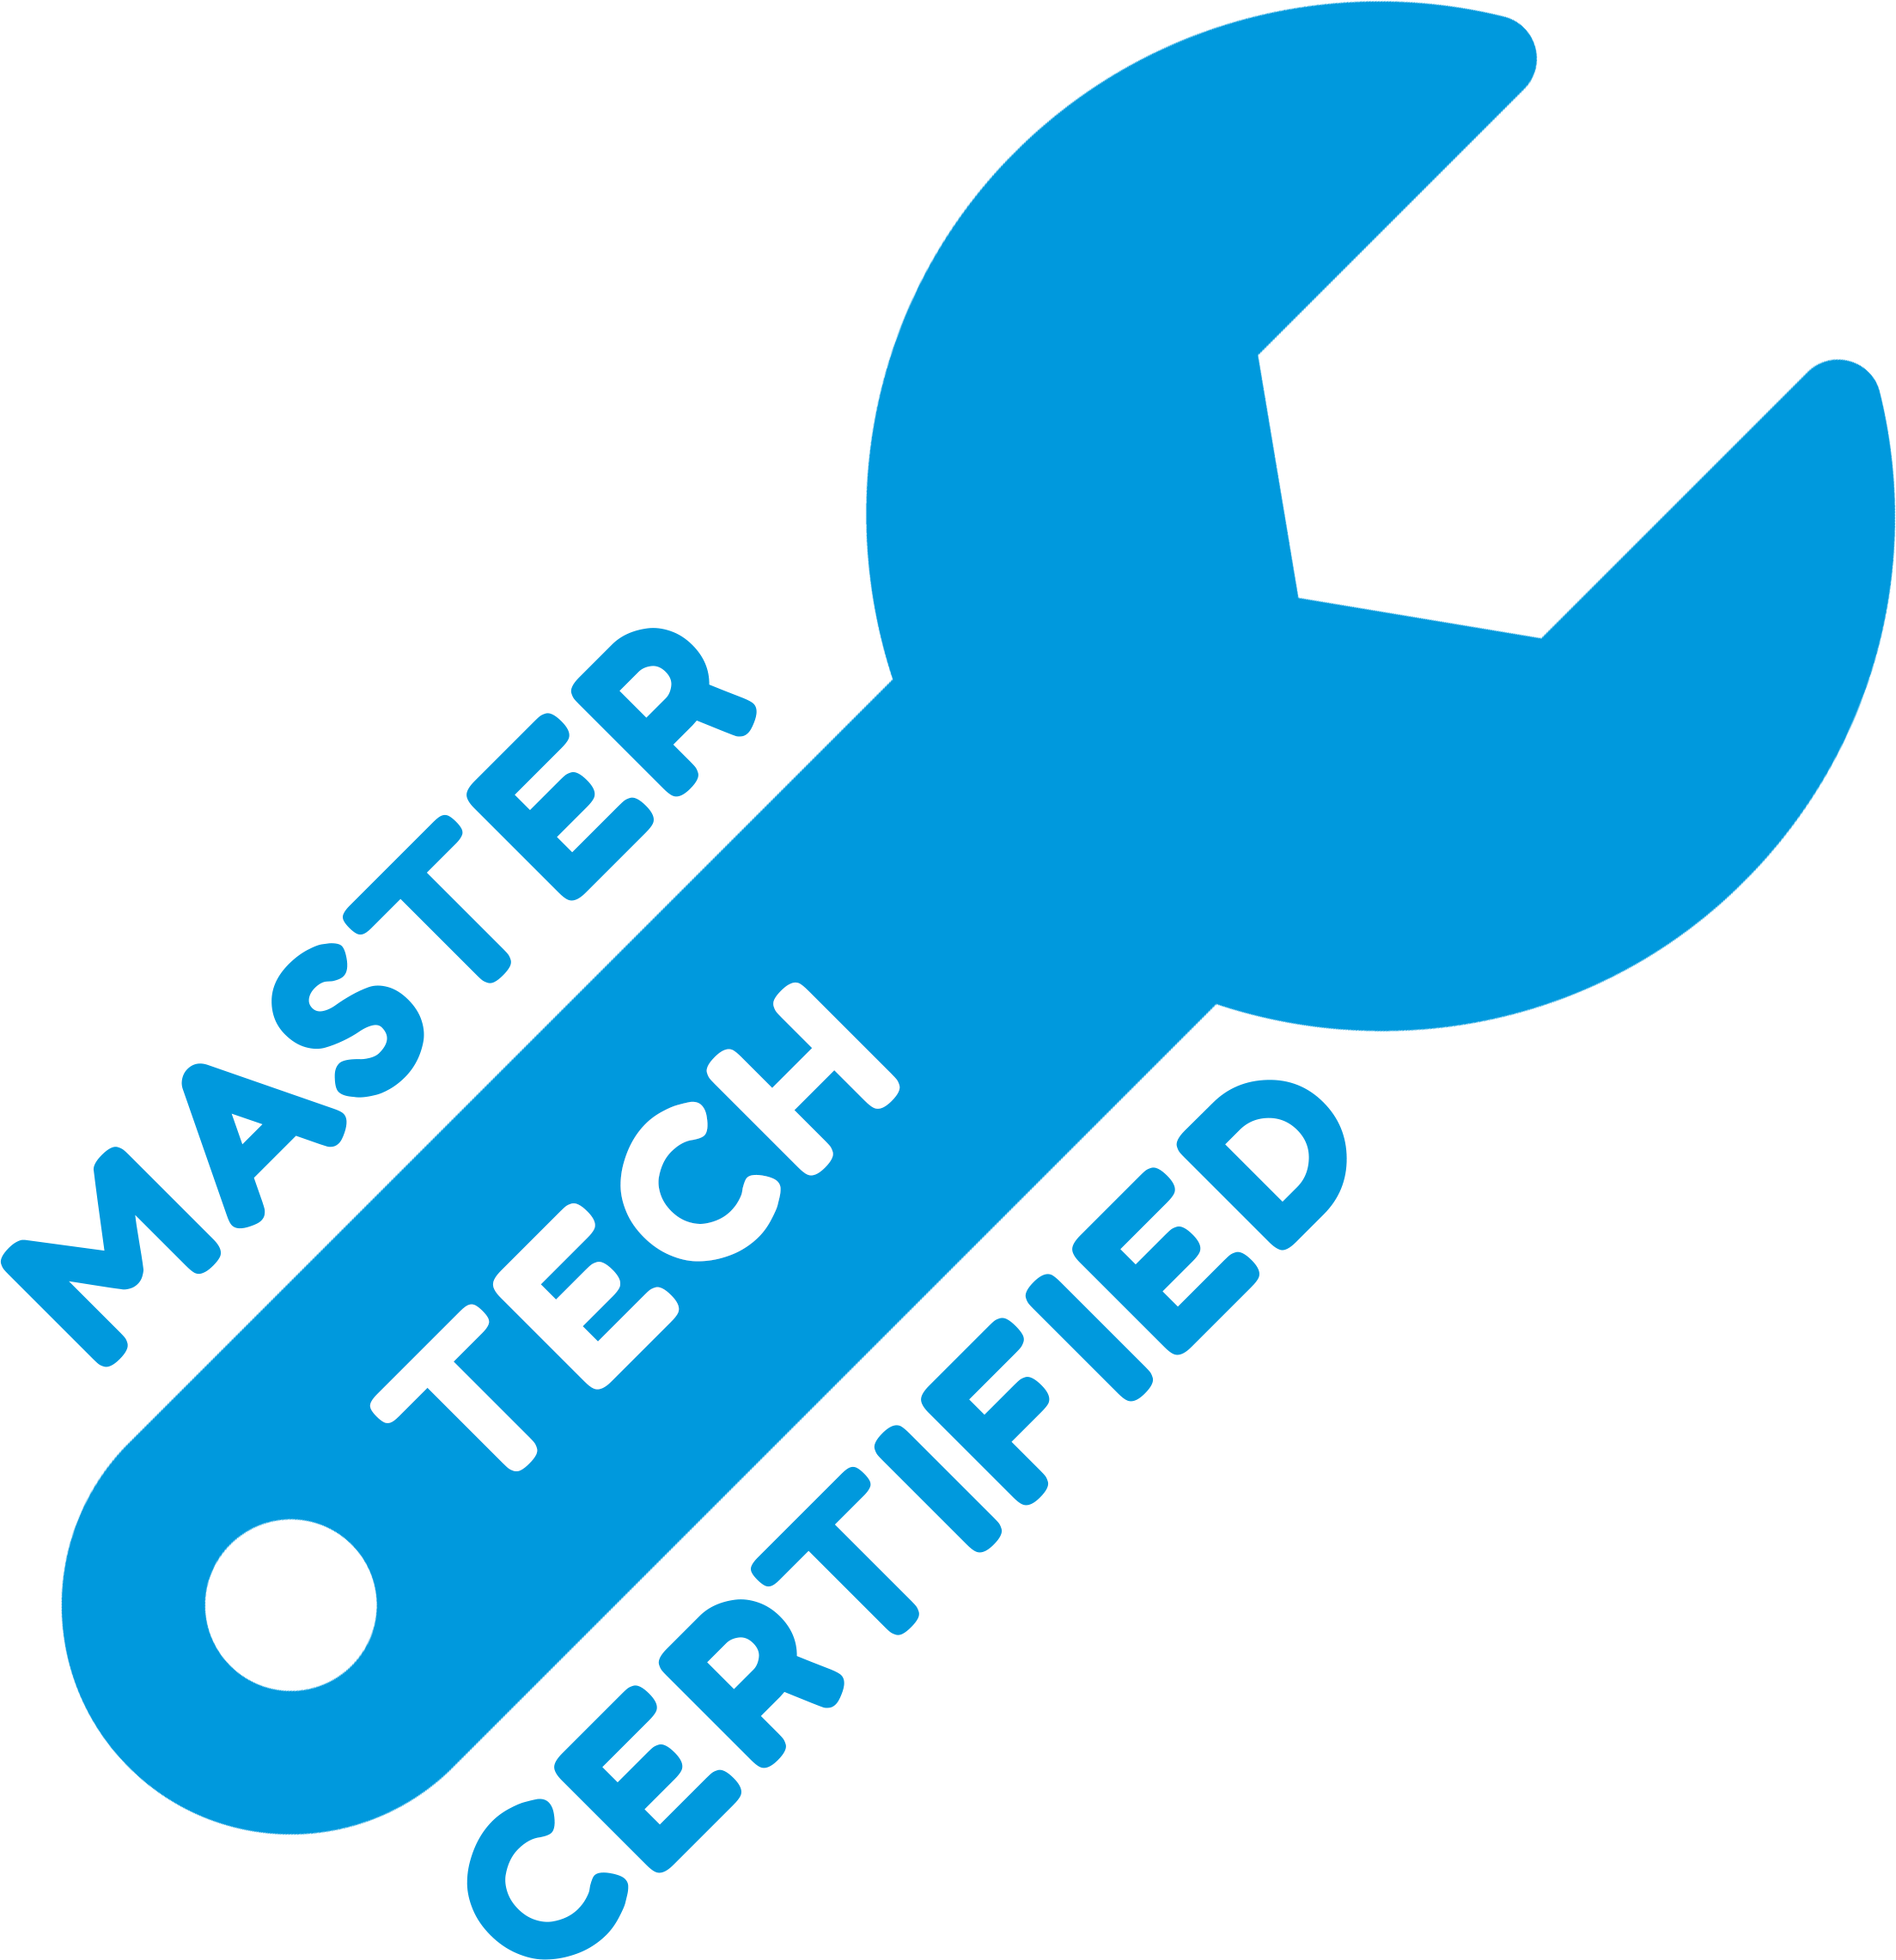 Master Techs, over 80 years of combined experience